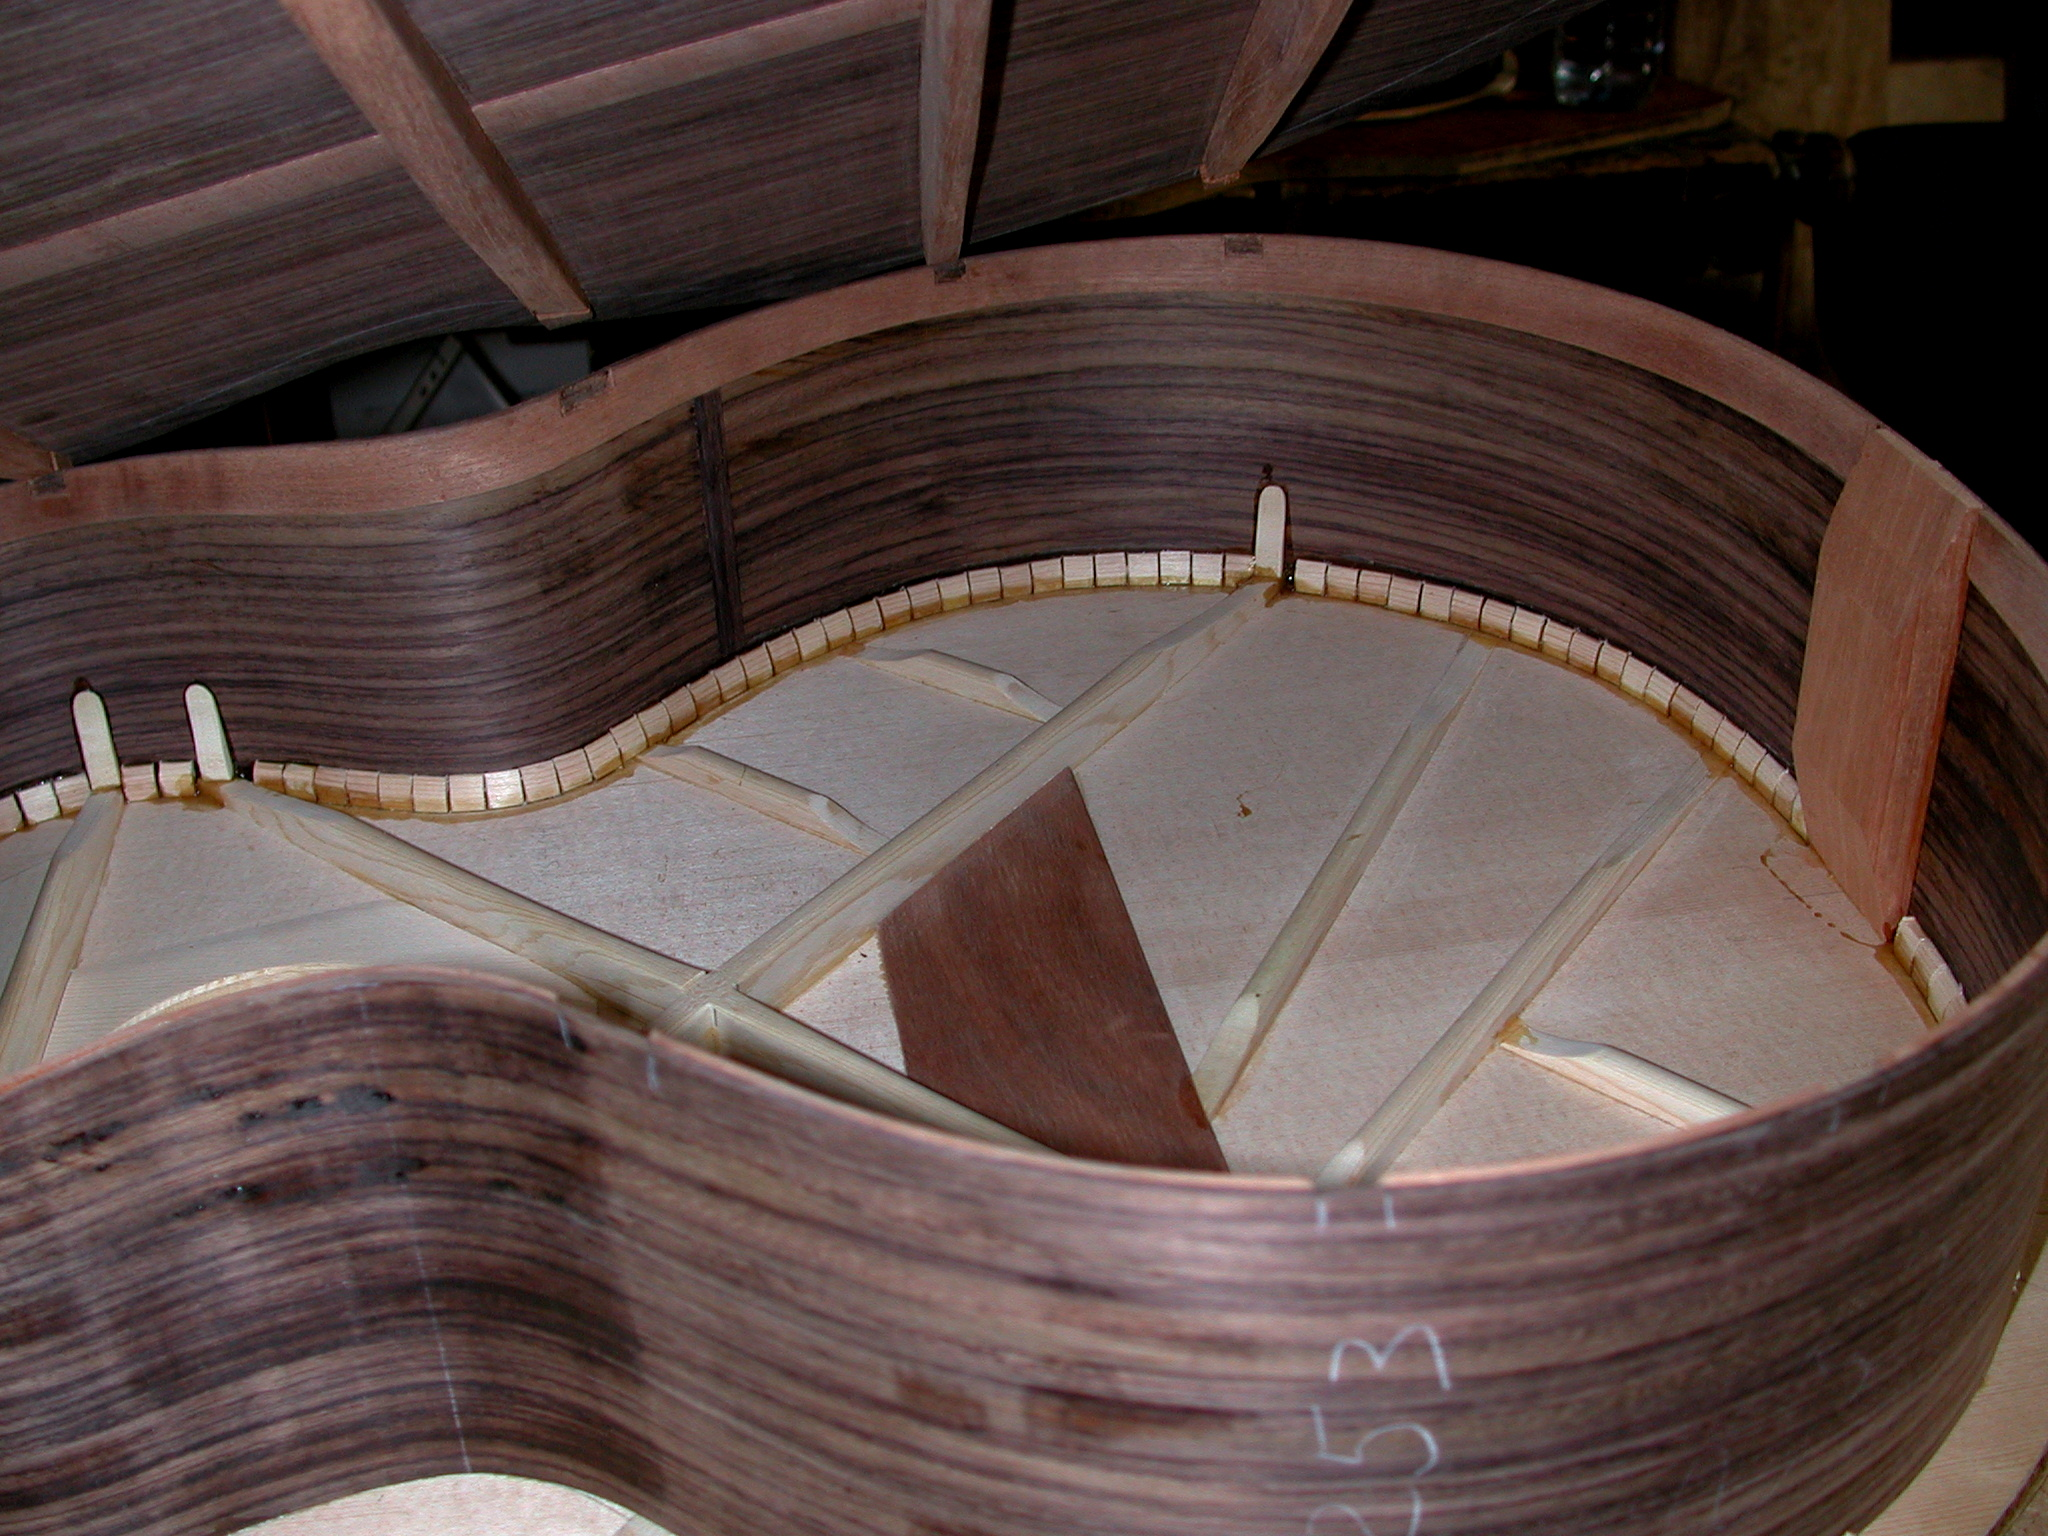 Back: The guitar is ready for glueing the back.